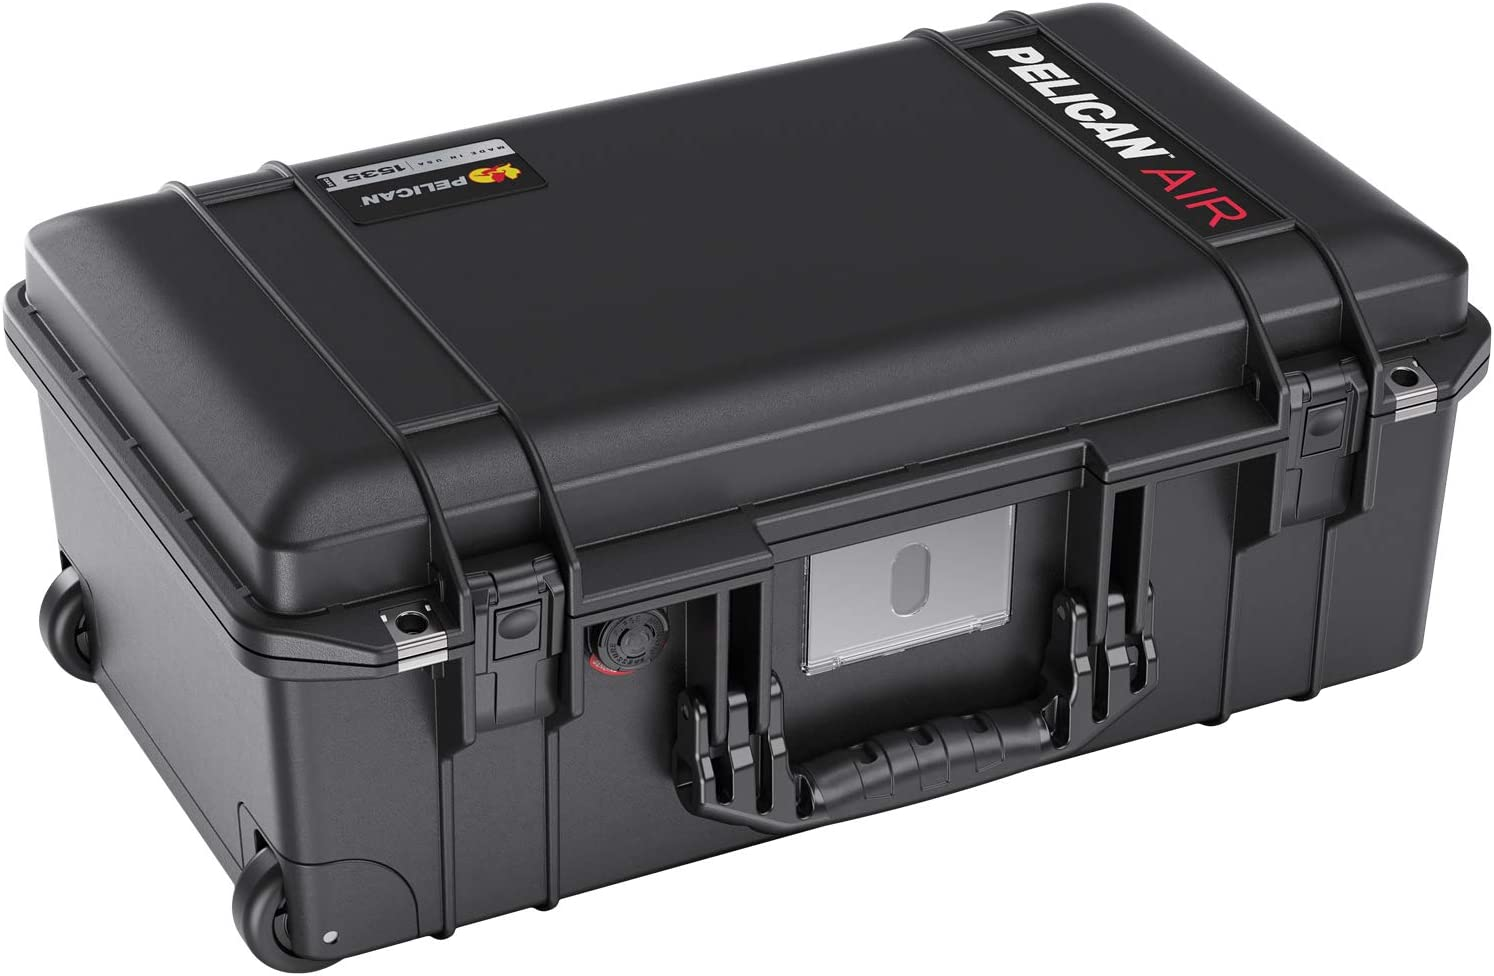 Pelican Air 1535 Case with Padded Dividers (2020 Edition with Push Button Latches) - Black (015350-0042-110)